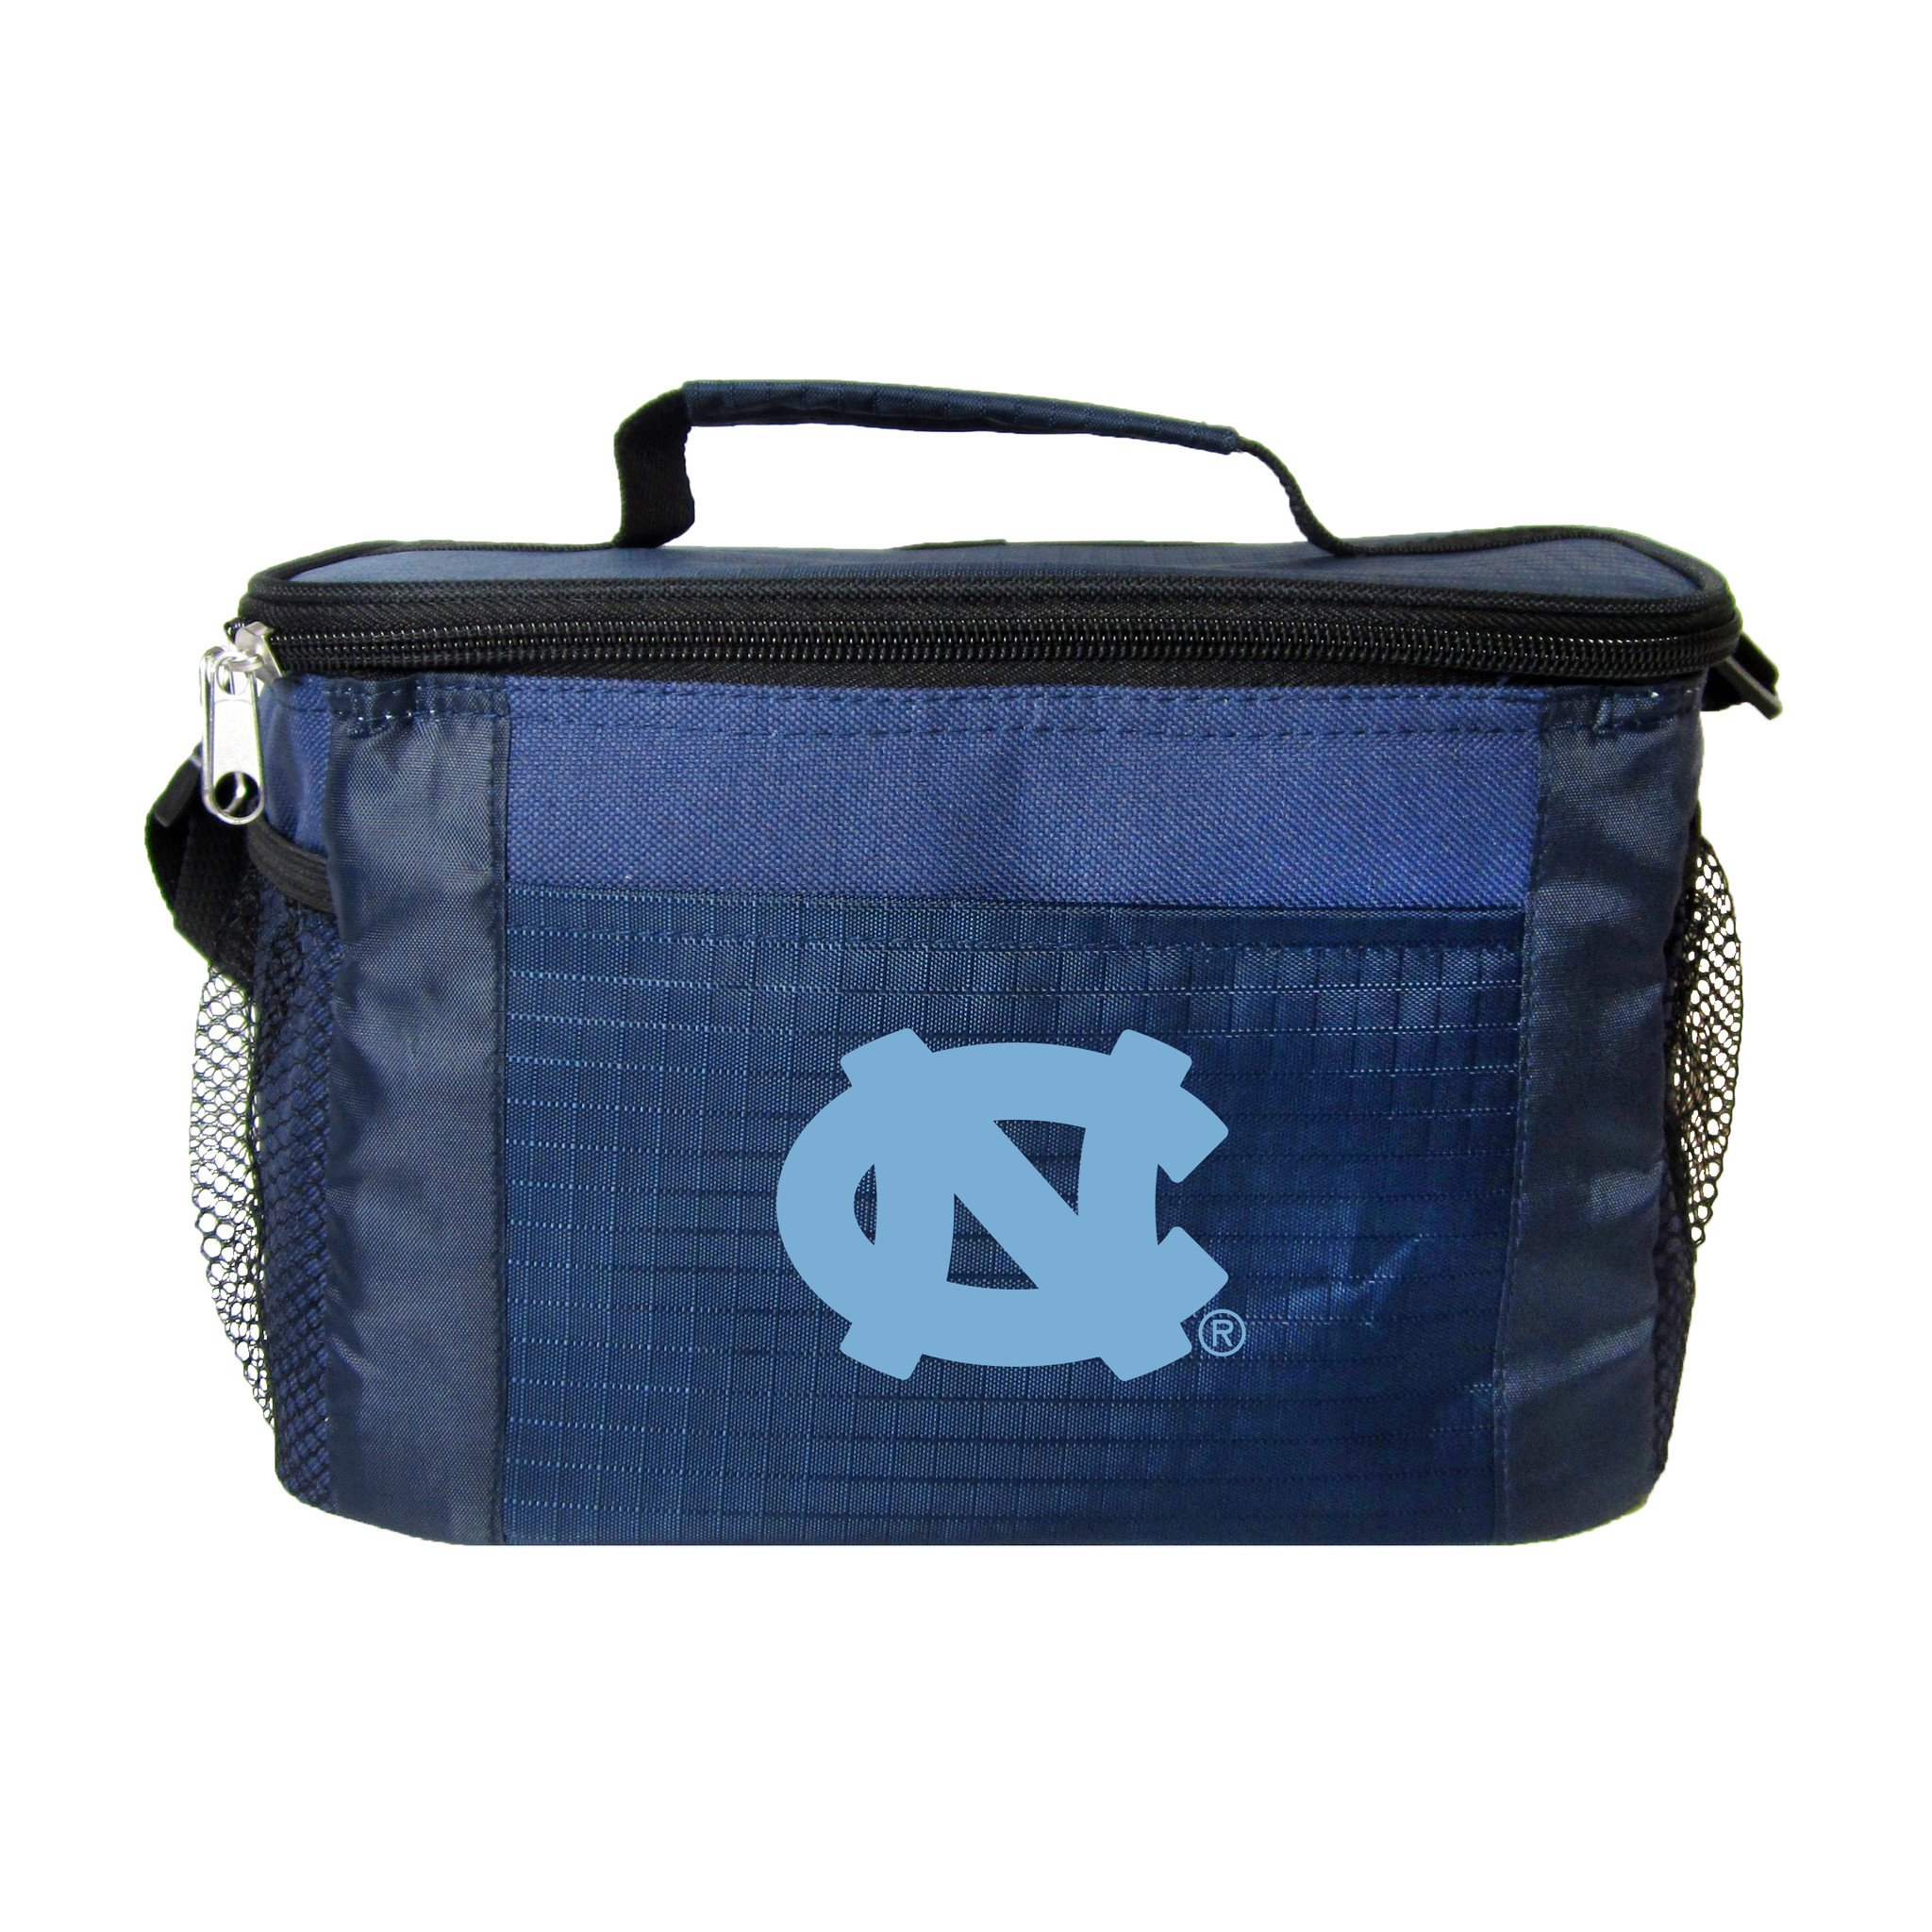 NCAA North Carolina Tar Heels 6 Can Cooler Bag